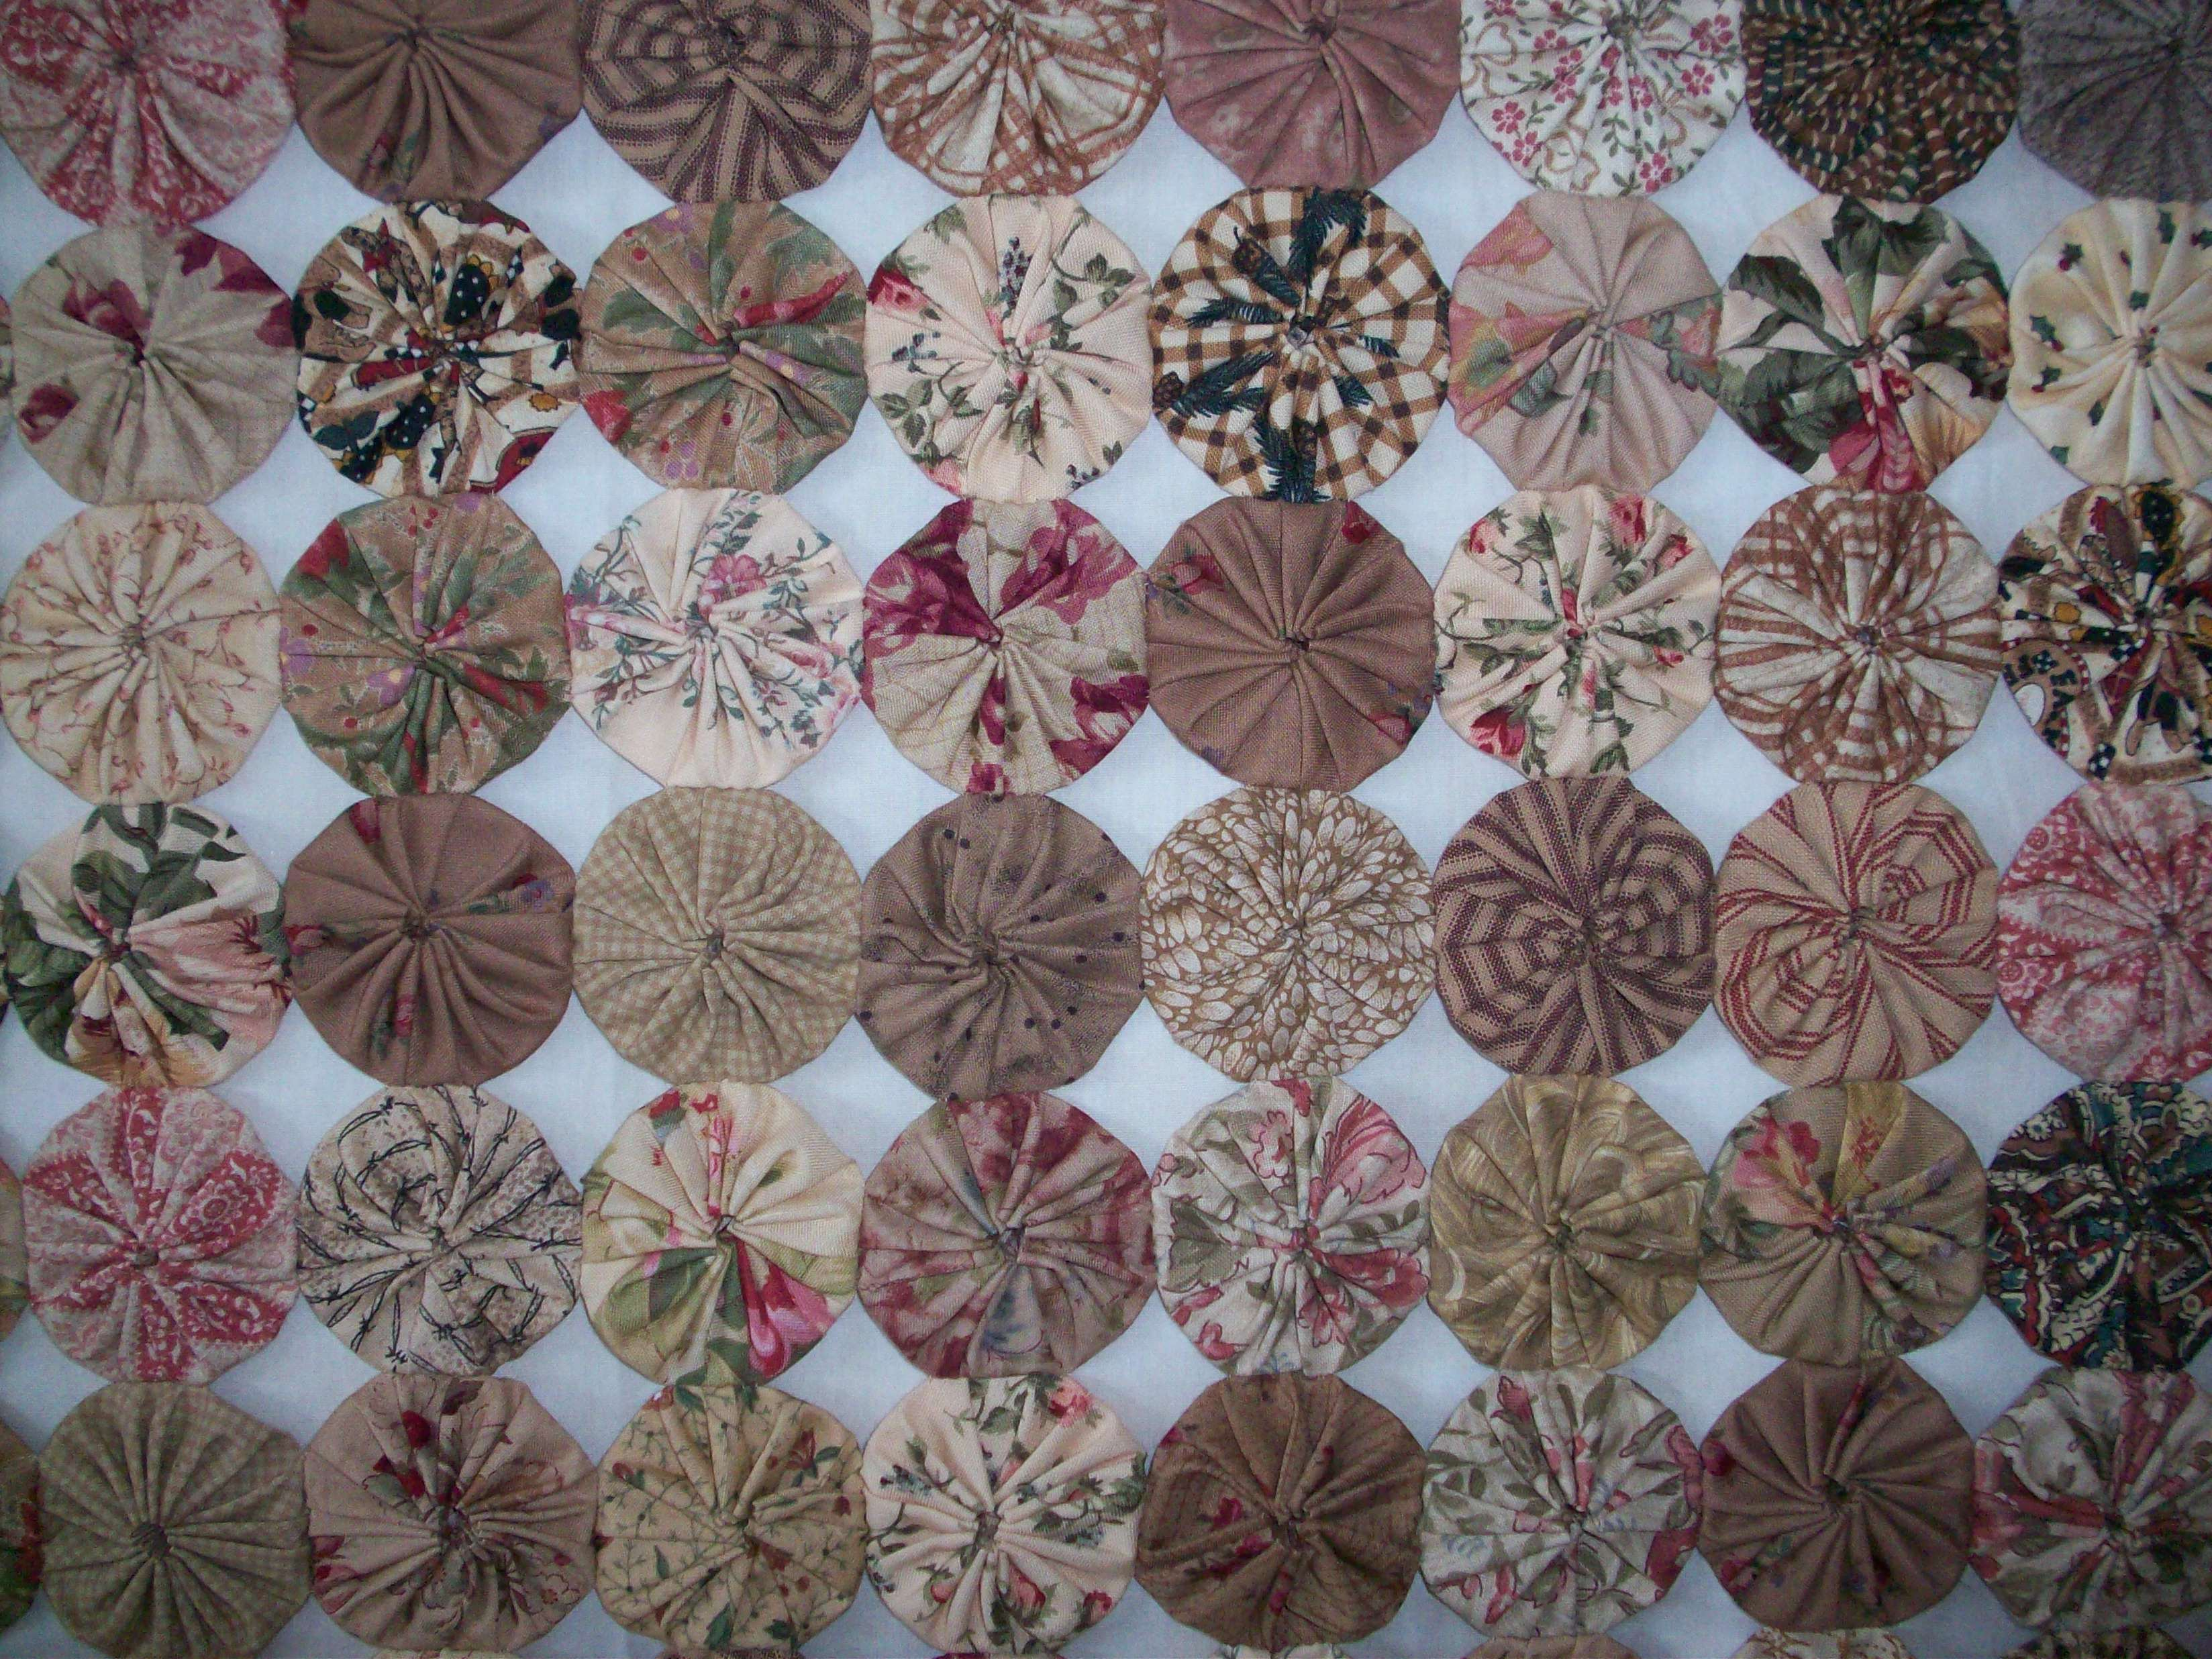 Suffolk Puff Quilt - Gum Valley Patchwork : quilting yo yos - Adamdwight.com